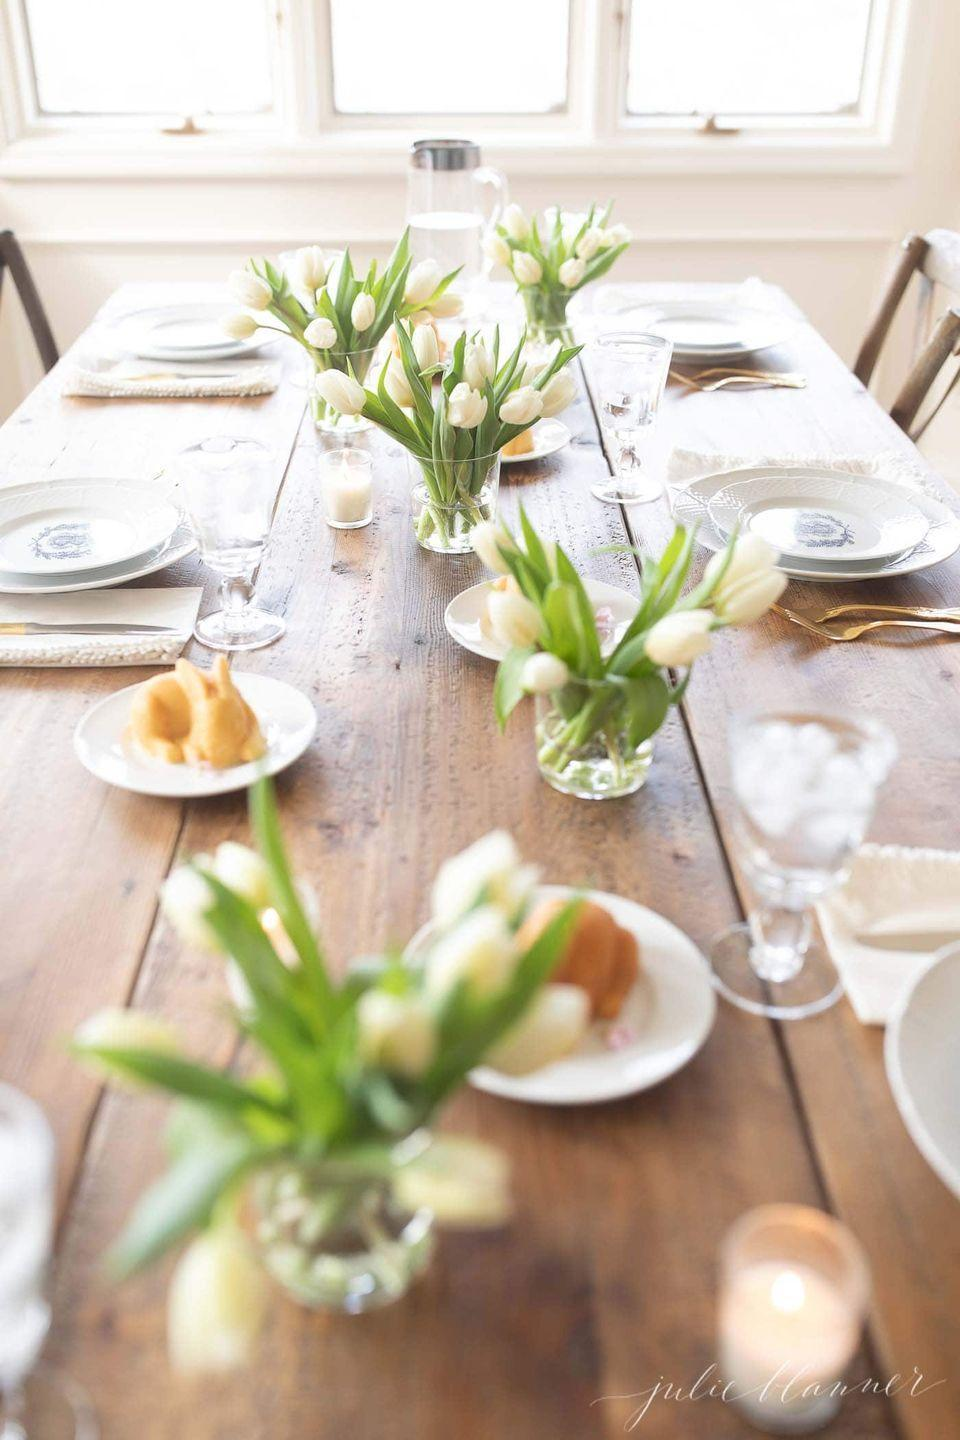 """<p>White tulips and glassware paired with gold silverware makes for a welcoming Easter tablescape. Don't forget the <a href=""""https://www.goodhousekeeping.com/food-recipes/dessert/a38185/raspberry-lemon-pound-cake-recipe/"""" rel=""""nofollow noopener"""" target=""""_blank"""" data-ylk=""""slk:pound cake"""" class=""""link rapid-noclick-resp"""">pound cake</a> bunnies as a finishing touch. <br><br><a class=""""link rapid-noclick-resp"""" href=""""https://www.amazon.com/Nordic-Ware-Baby-Bunny-Cakes/dp/B00UKB4B9U?tag=syn-yahoo-20&ascsubtag=%5Bartid%7C10055.g.2217%5Bsrc%7Cyahoo-us"""" rel=""""nofollow noopener"""" target=""""_blank"""" data-ylk=""""slk:SHOP BUNNY BAKING PANS"""">SHOP BUNNY BAKING PANS</a><br><em><a href=""""https://julieblanner.com/tulip-centerpiece/"""" rel=""""nofollow noopener"""" target=""""_blank"""" data-ylk=""""slk:Get the tutorial at Julie Blanner »"""" class=""""link rapid-noclick-resp""""><br>Get the tutorial at Julie Blanner »</a> <br></em></p>"""